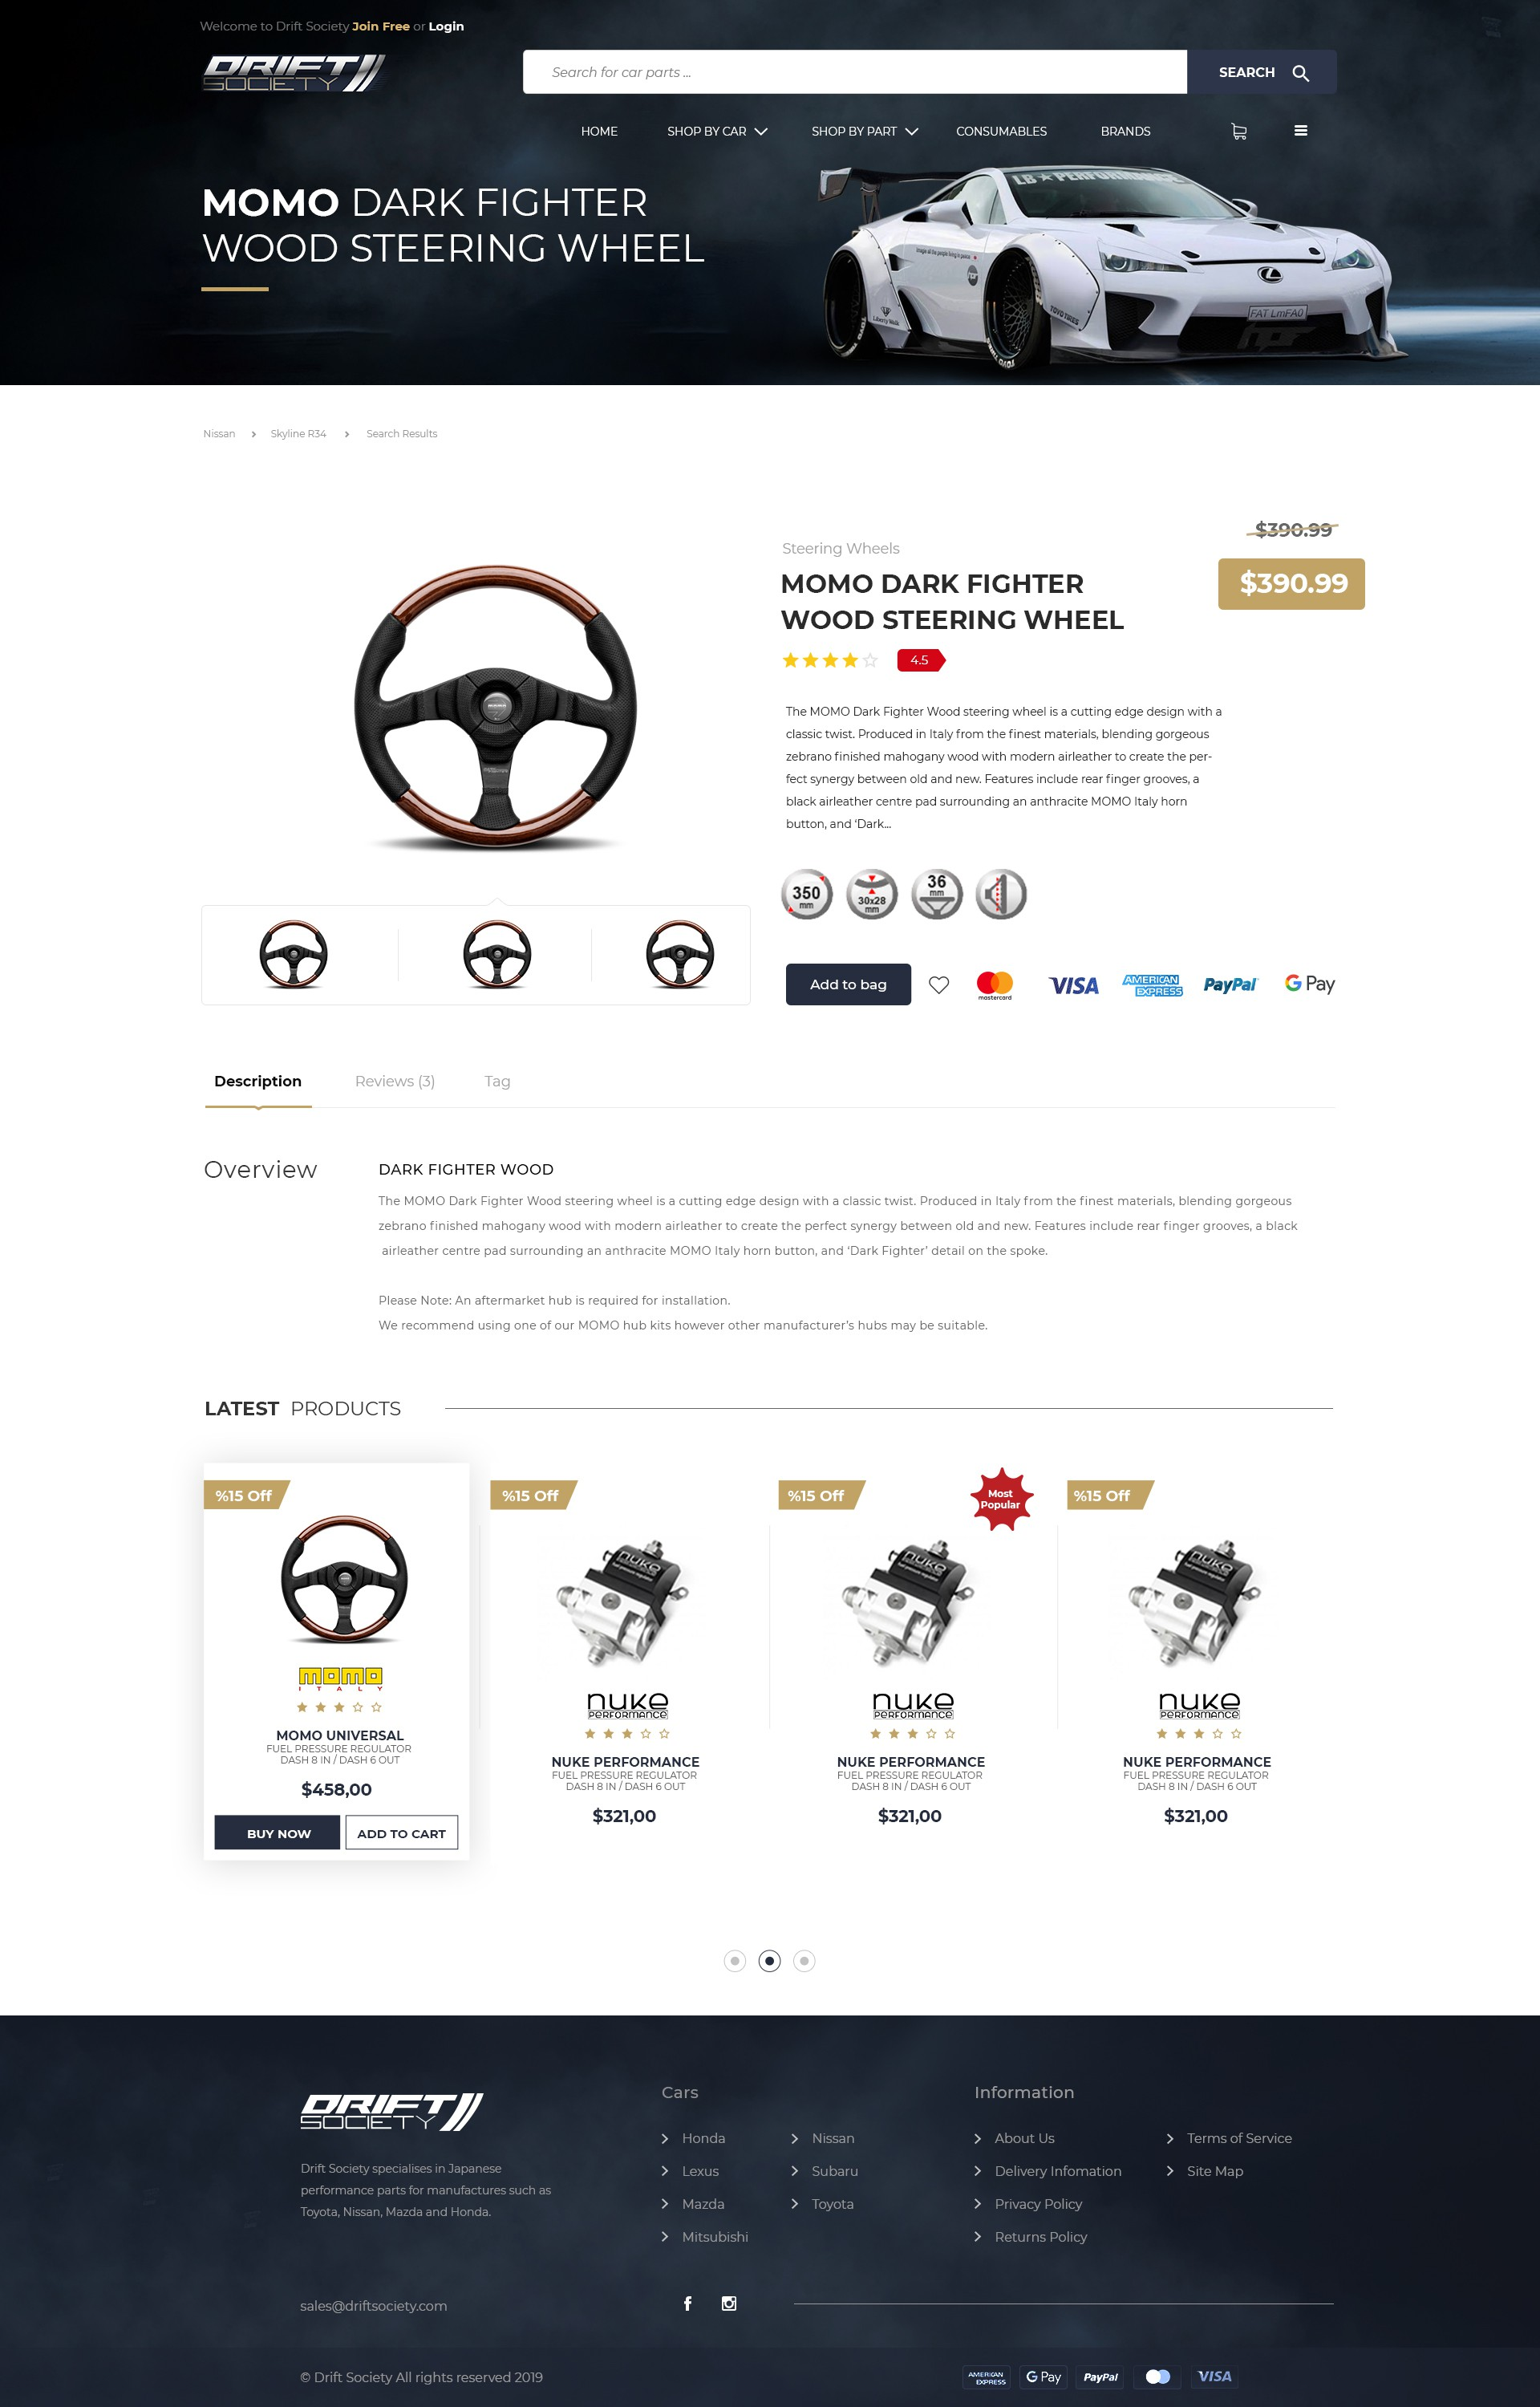 Redesign Automotive parts store website Drift Society - Shopify